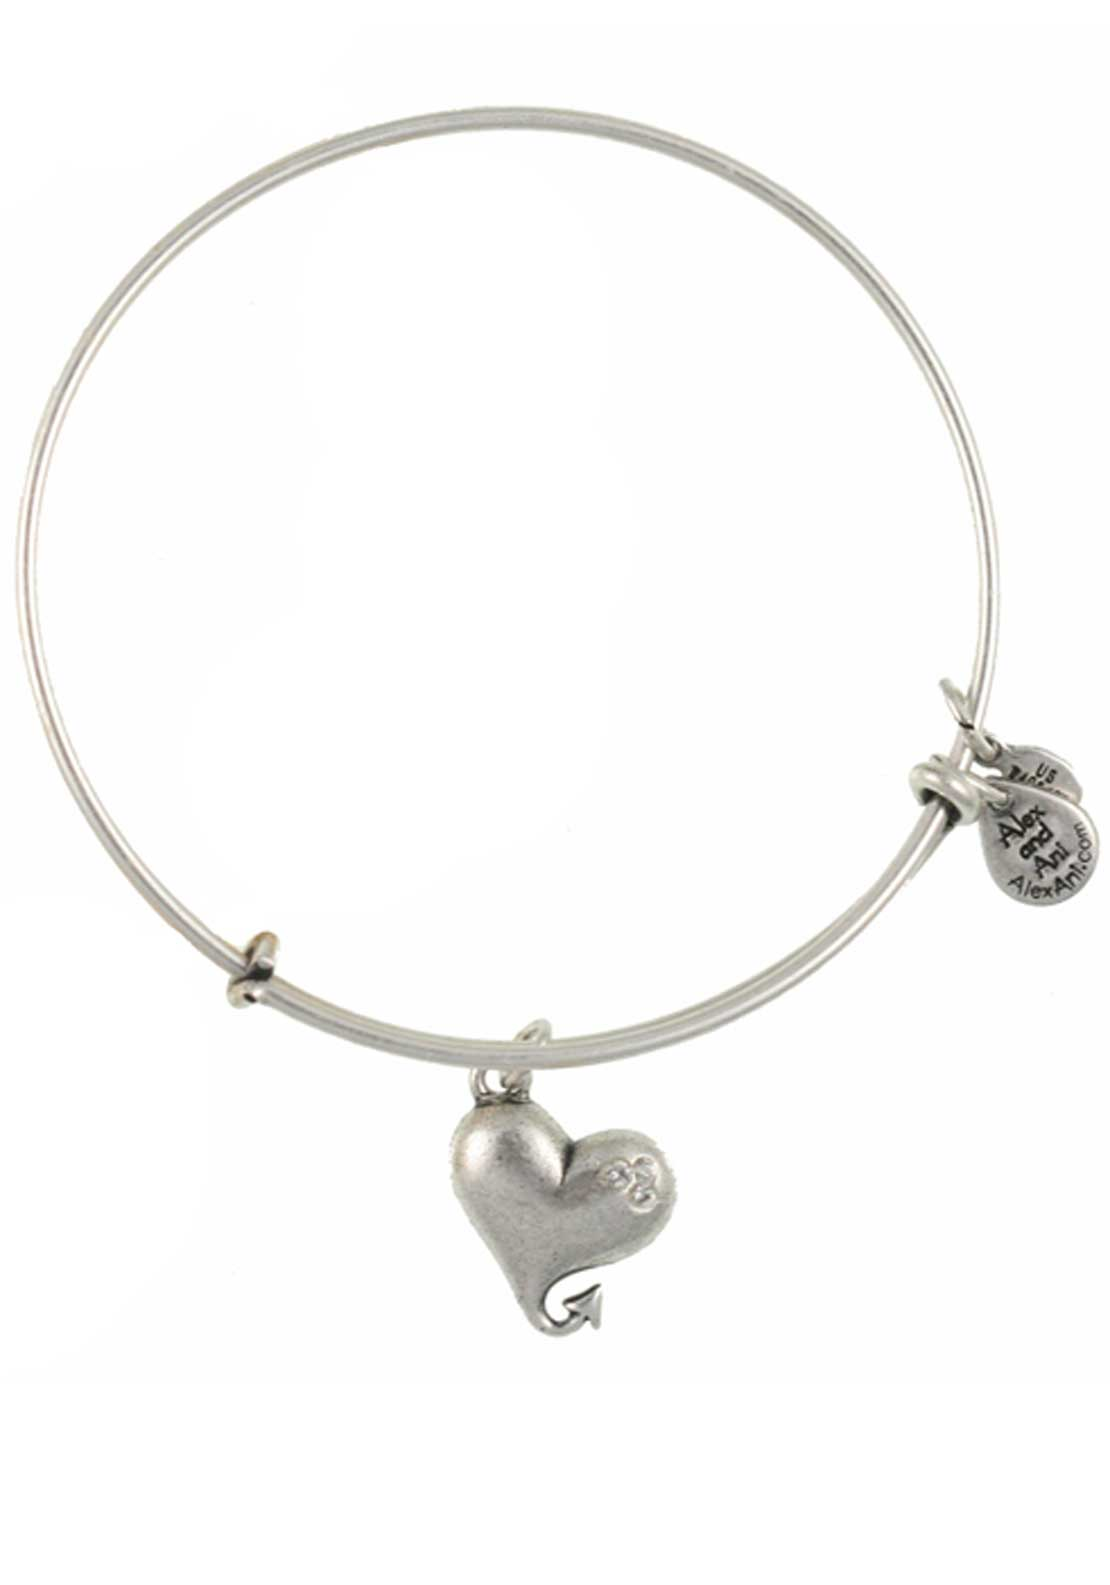 Alex and Ani Cupid's Heart Bracelet, Silver